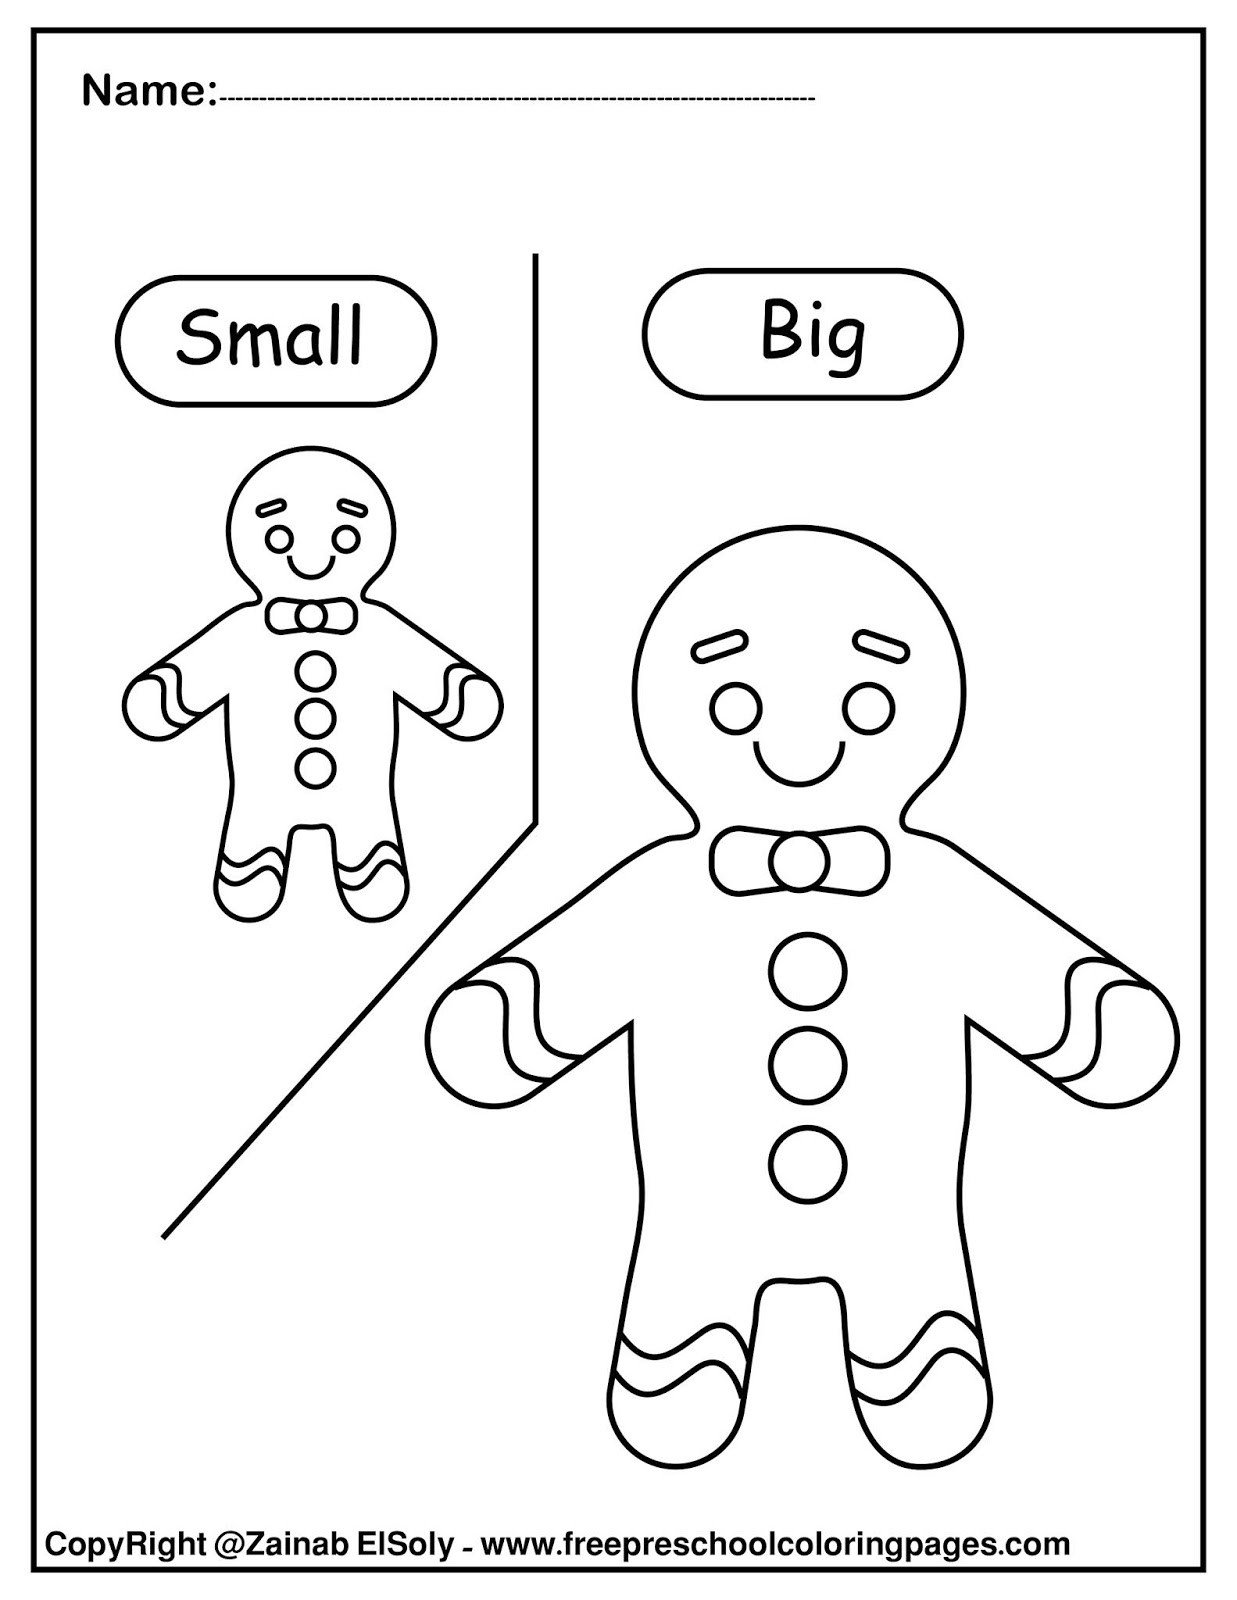 Big Vs Little Worksheets Set Gingerbread Man Opposites for Kids Big and Little